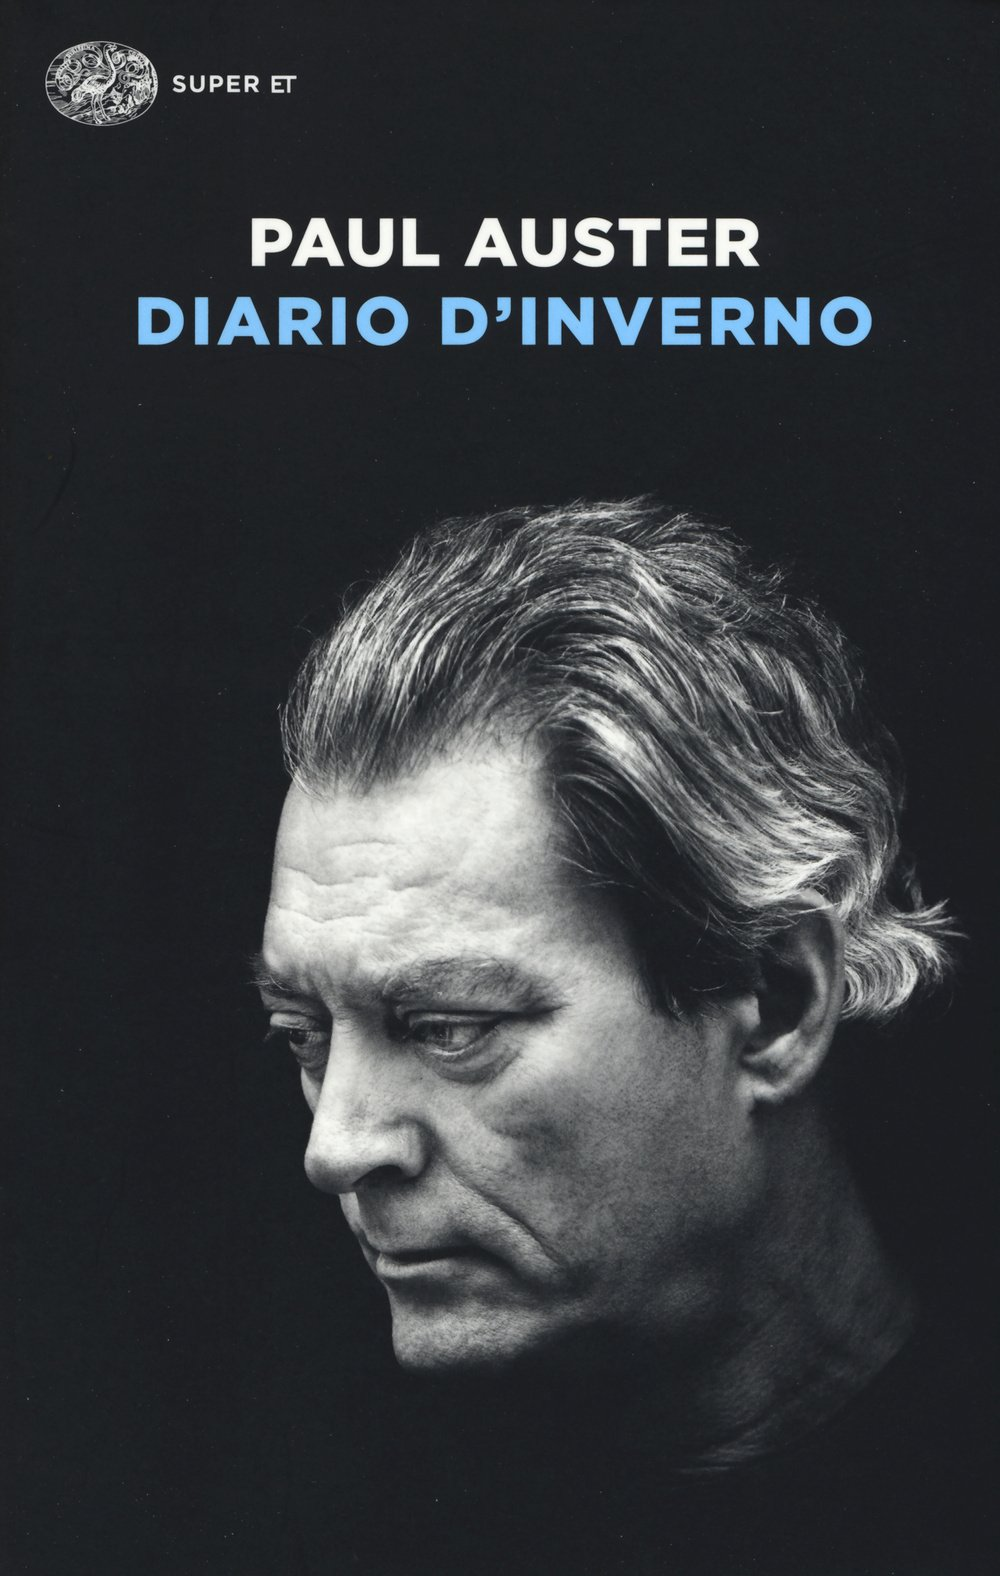 Amazon.it: Diario d'inverno - Auster, Paul, Bocchiola, M. - Libri